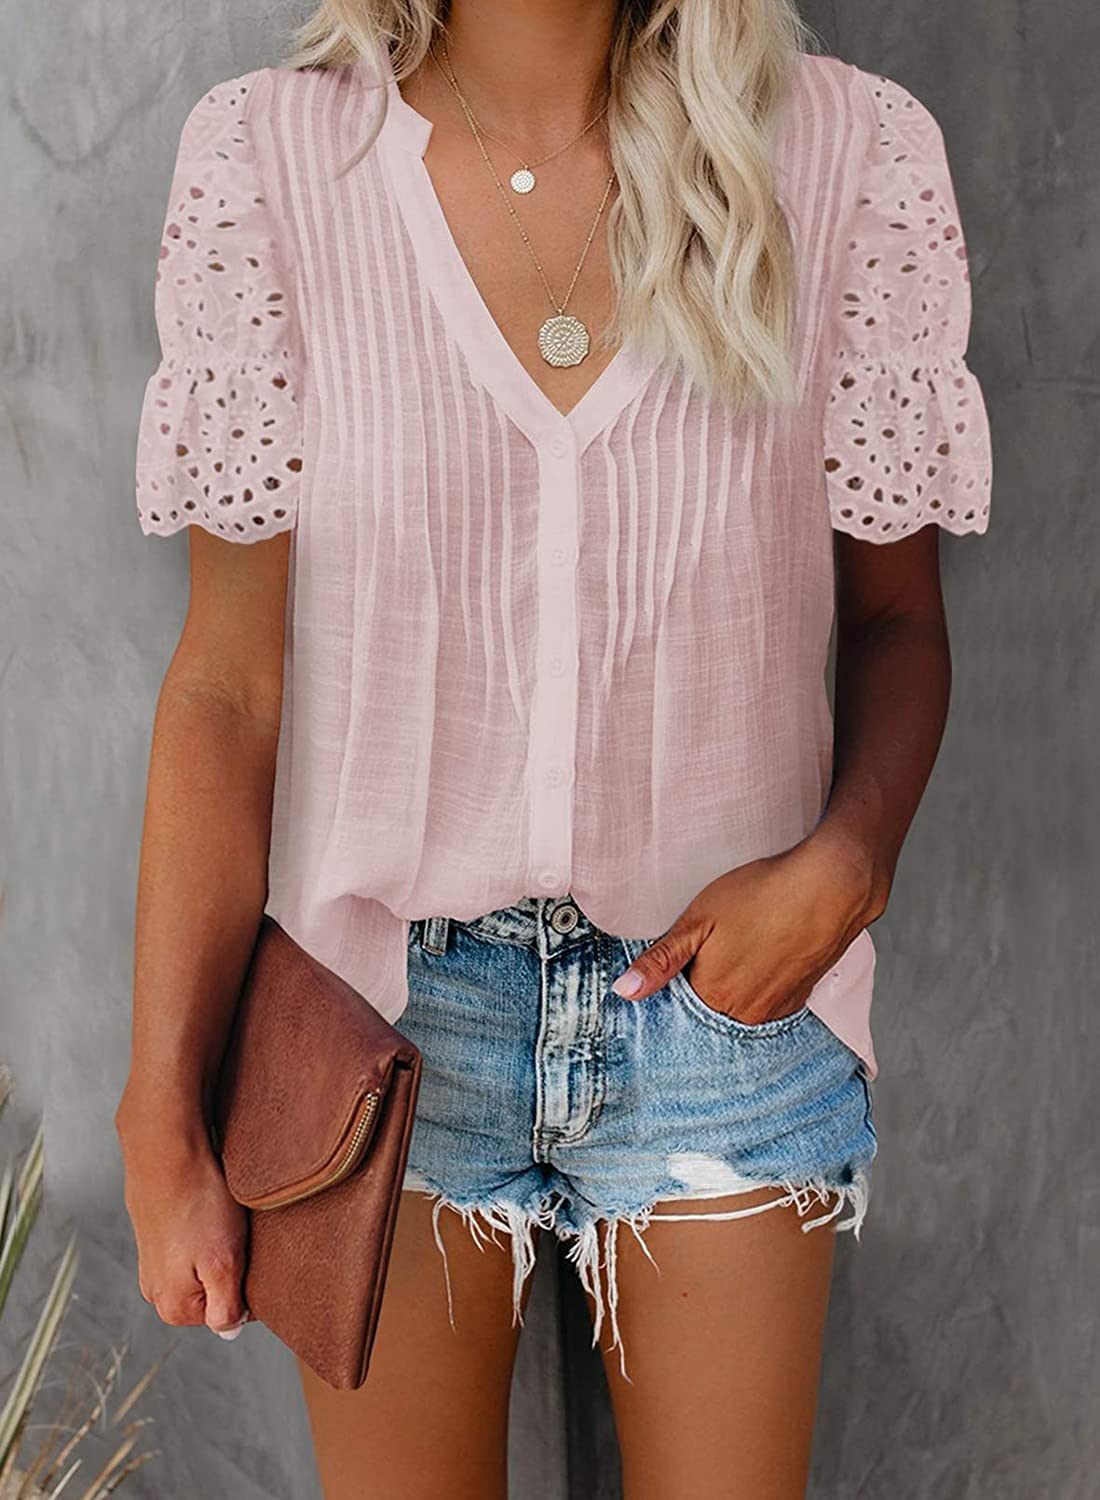 HOTAPEI Women's V Neck Lace Crochet Eyelet Tops Summer Short Sleeve Button Down Casual T Shirts Blouses